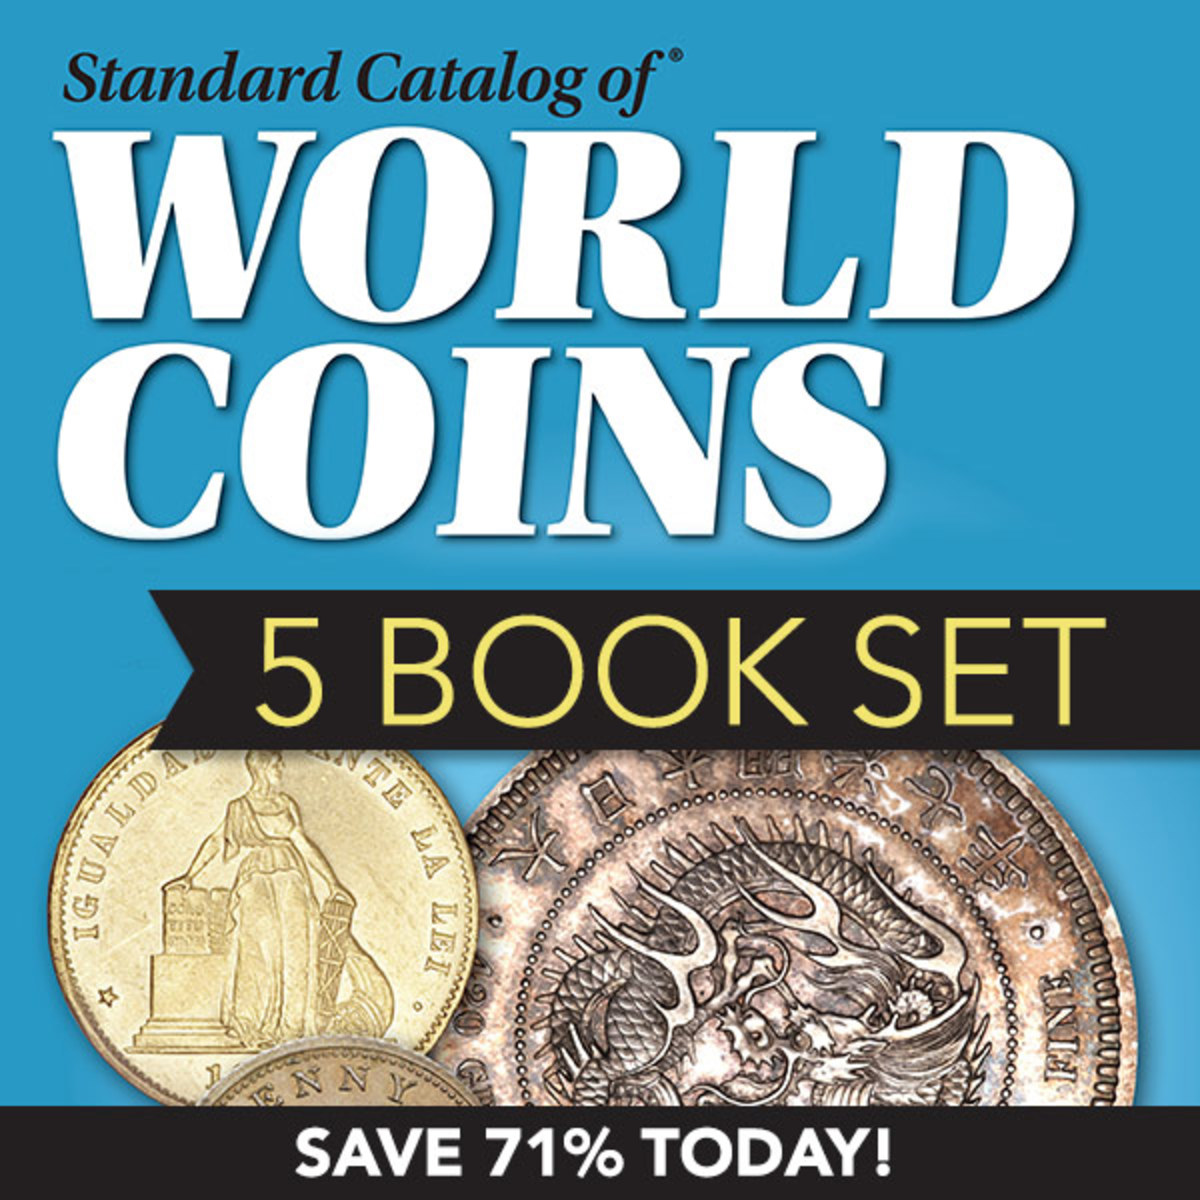 Check out the Standard Catalog of World Coins 5-Book set, on sale now!